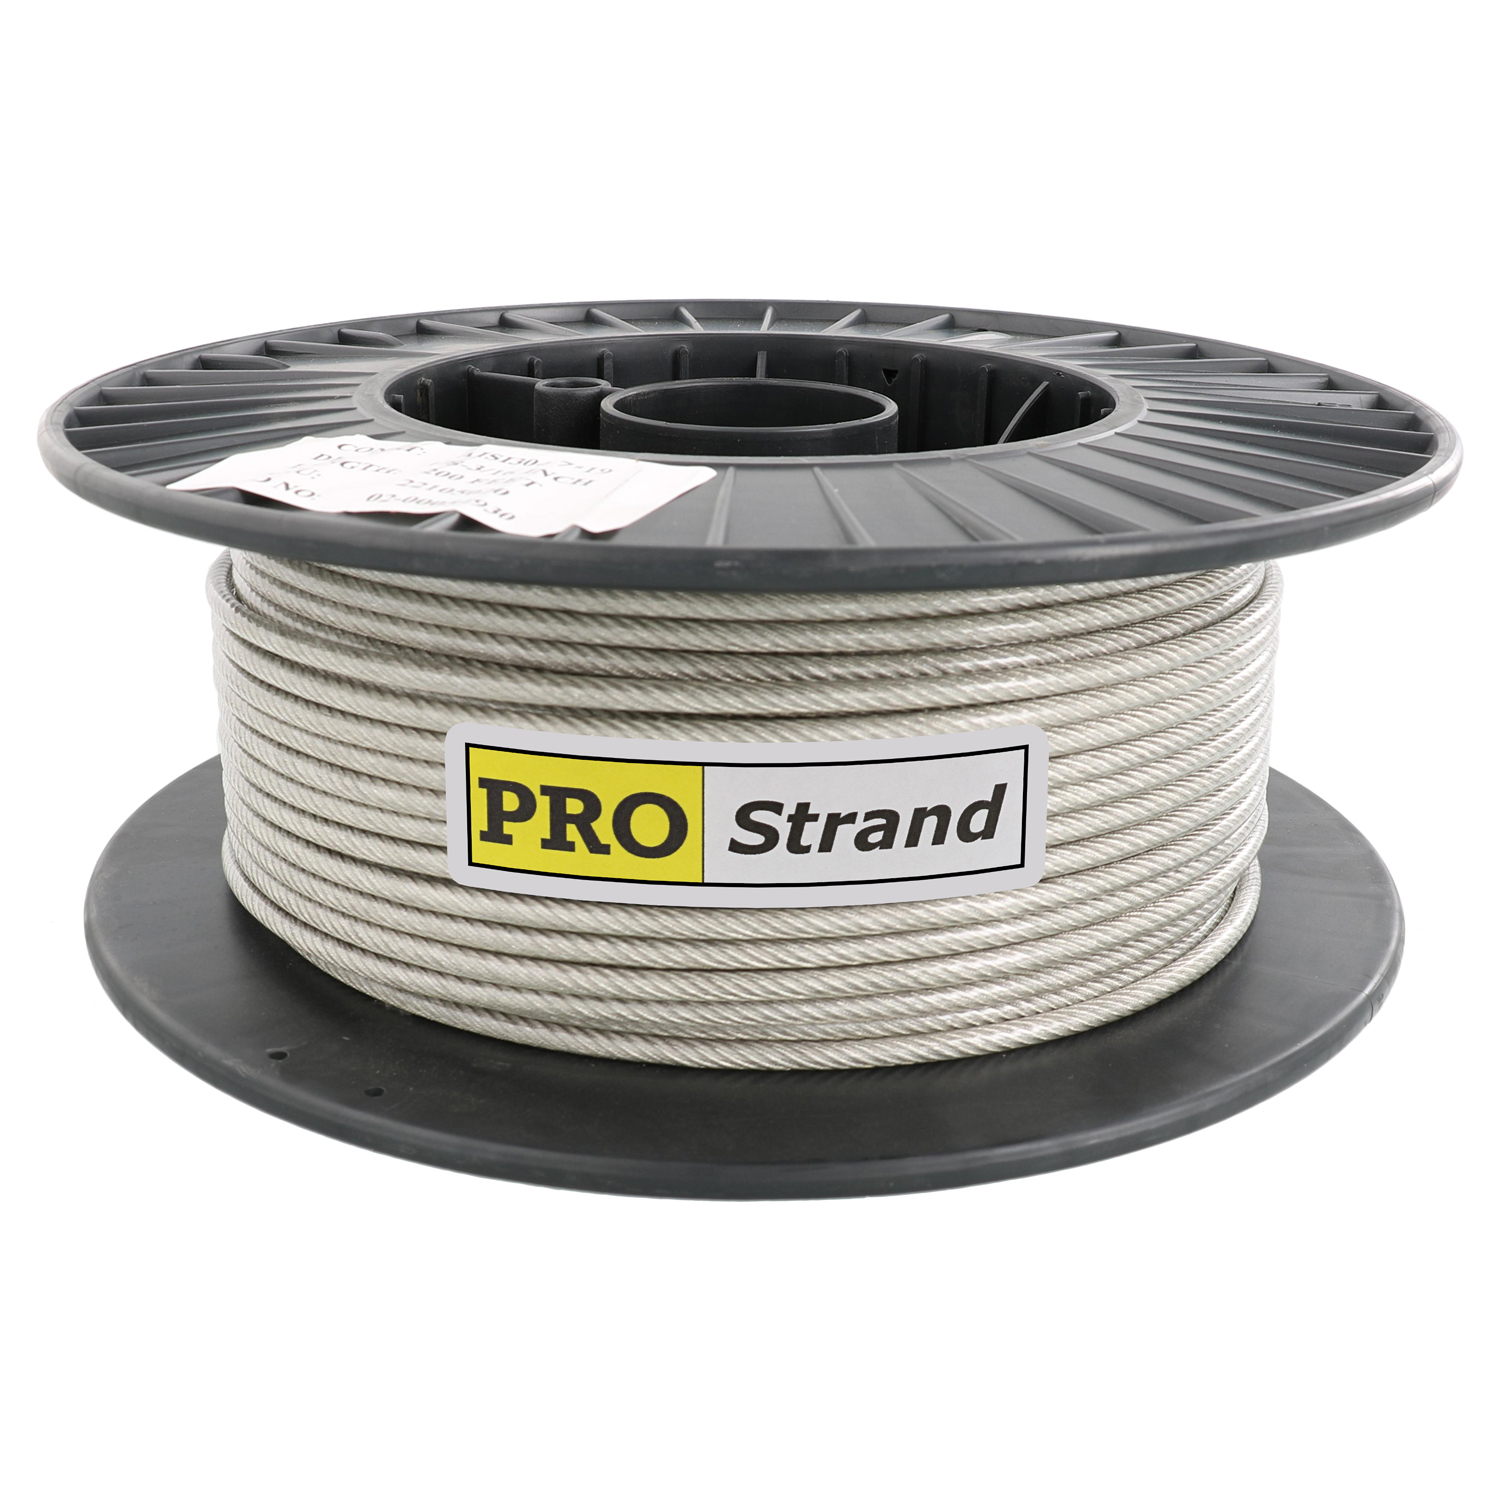 1⁄8 inch, 7 x 19 Type 304 Vinyl Coated Stainless Steel Cable